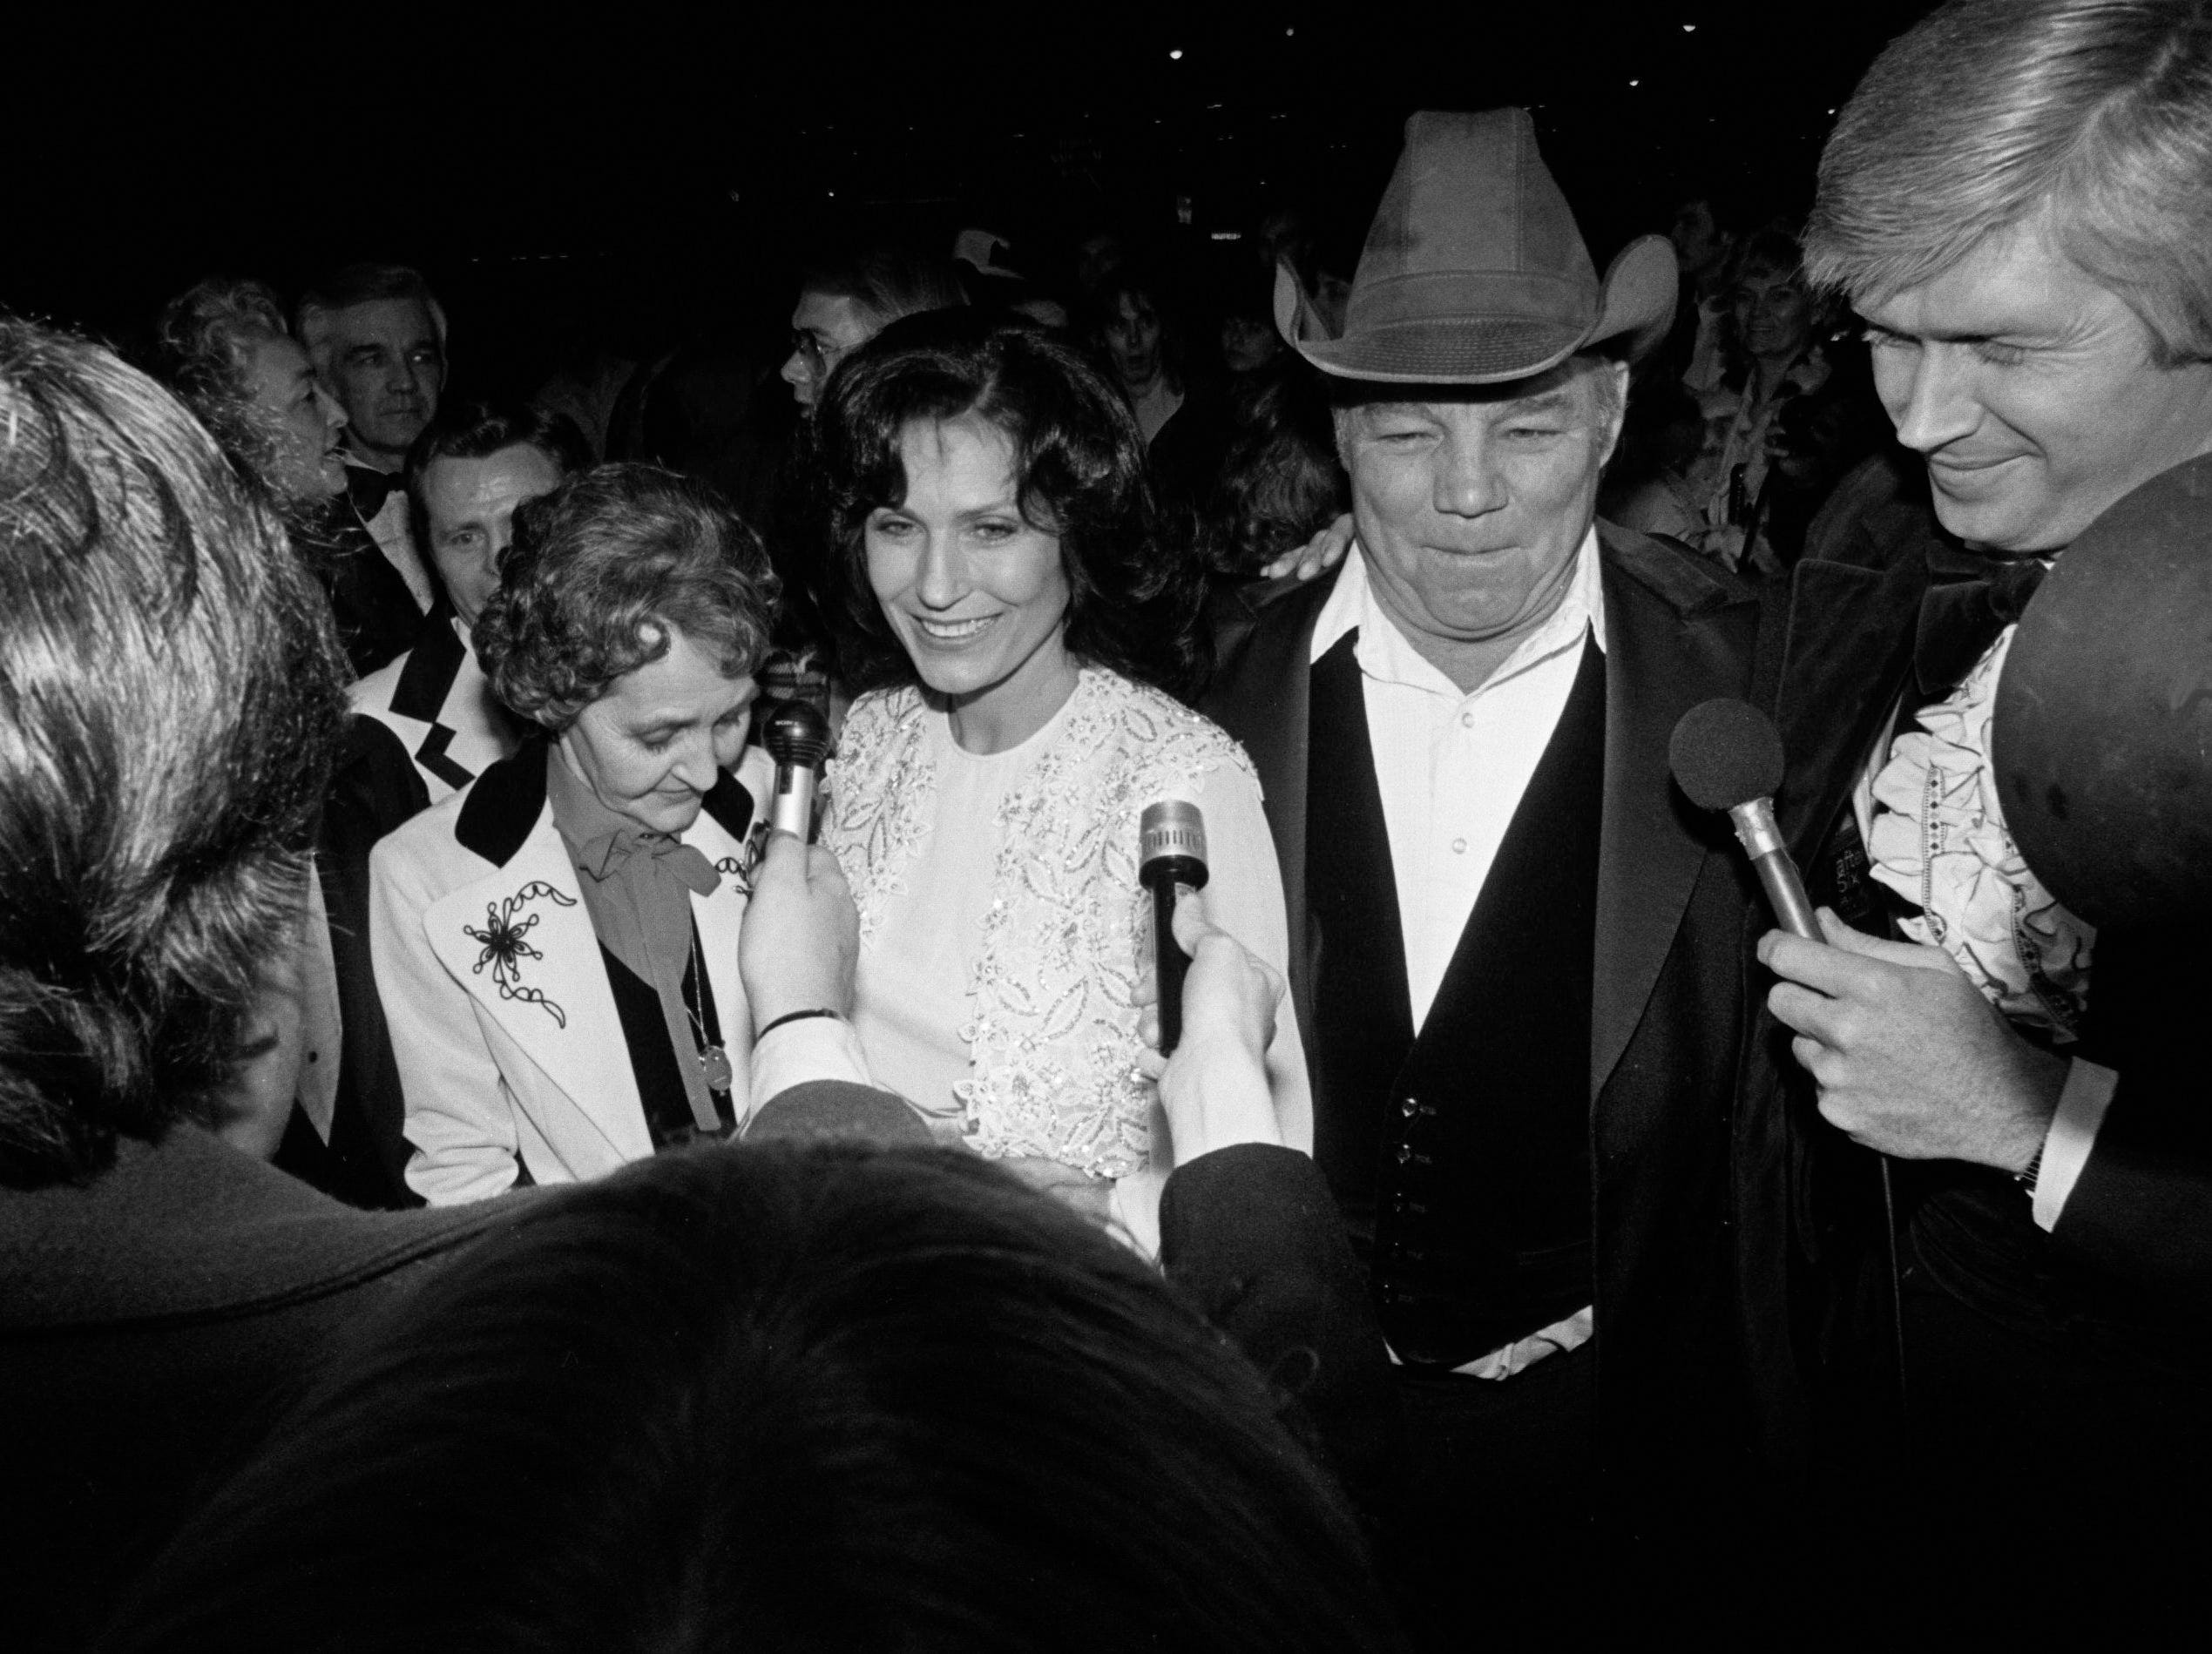 """Loretta Lynn, center, arrives at Belle Meade Theater in the drizzling rain for the movie premiere of """"Coal Miner's Daughter"""" with her mother, Clara Butcher, left, and her husband, Mooney Lynn, March 4, 1980."""